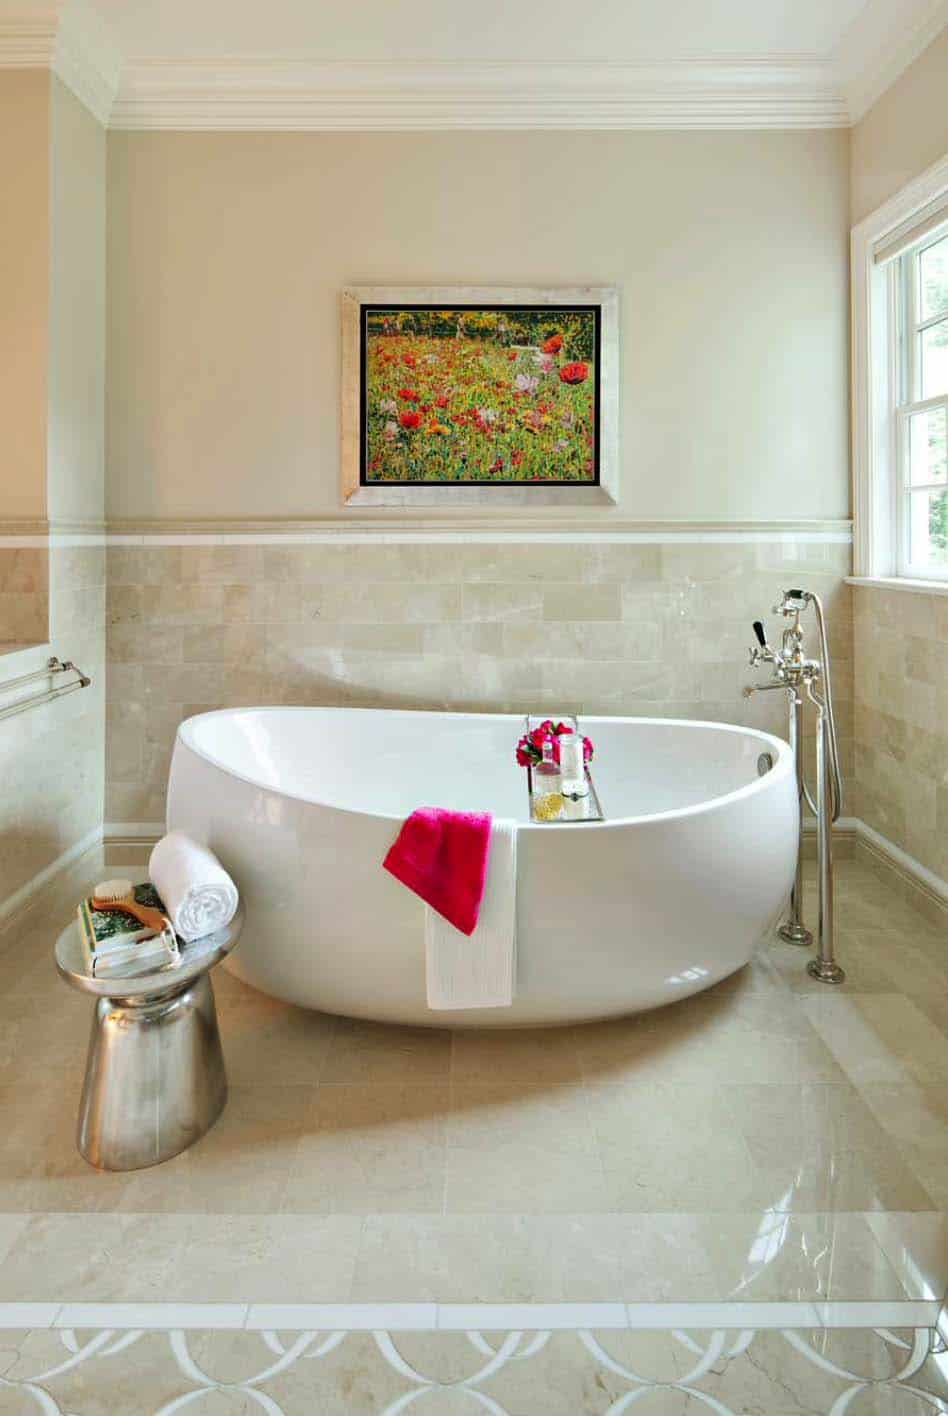 Freestanding-Tubs-Bathroom-Ideas-30-1 Kindesign